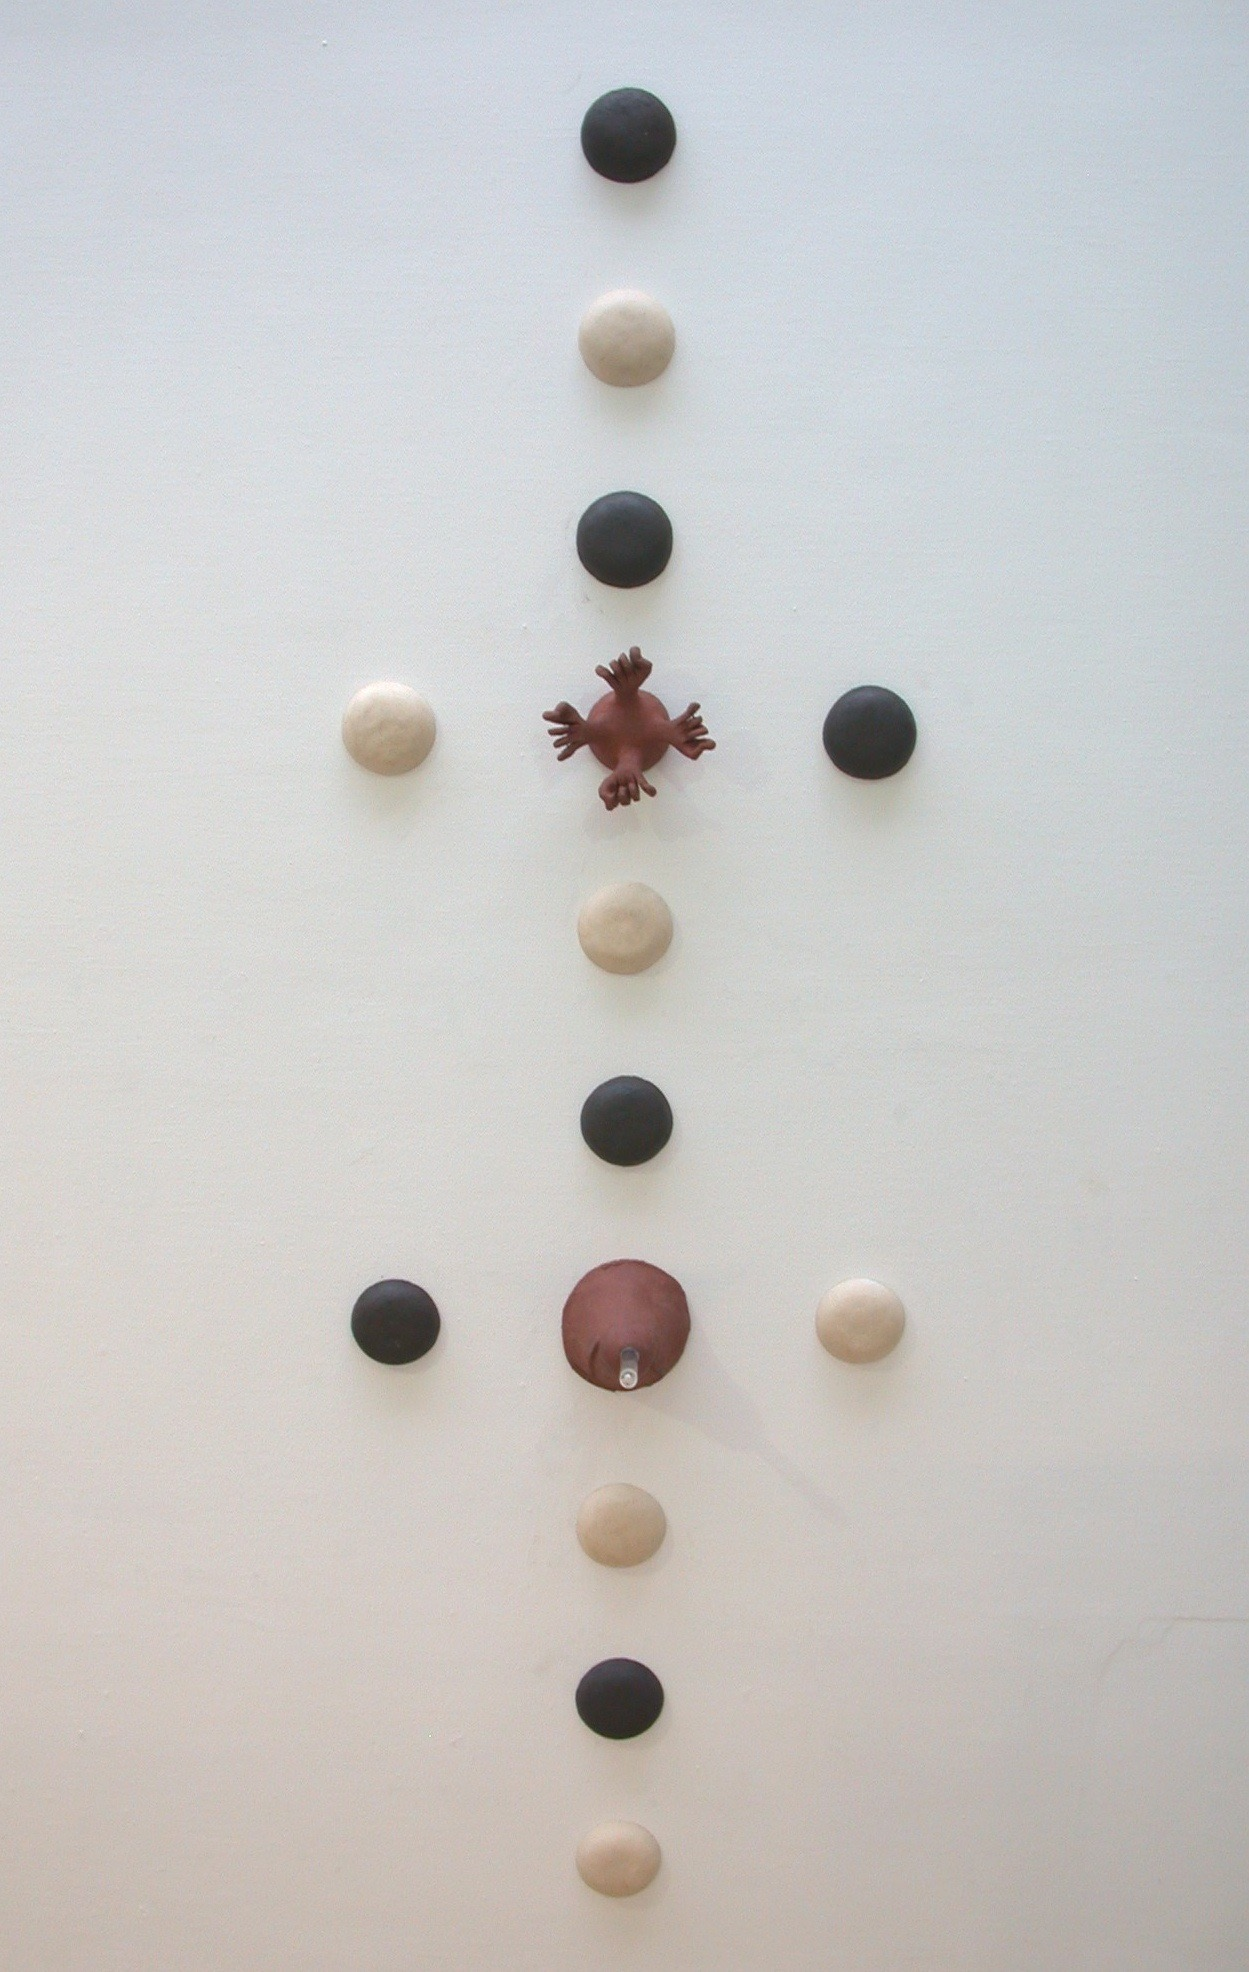 Installation-Galerie 'de Meerse', ceramic and glass, variable dimensions, 2006